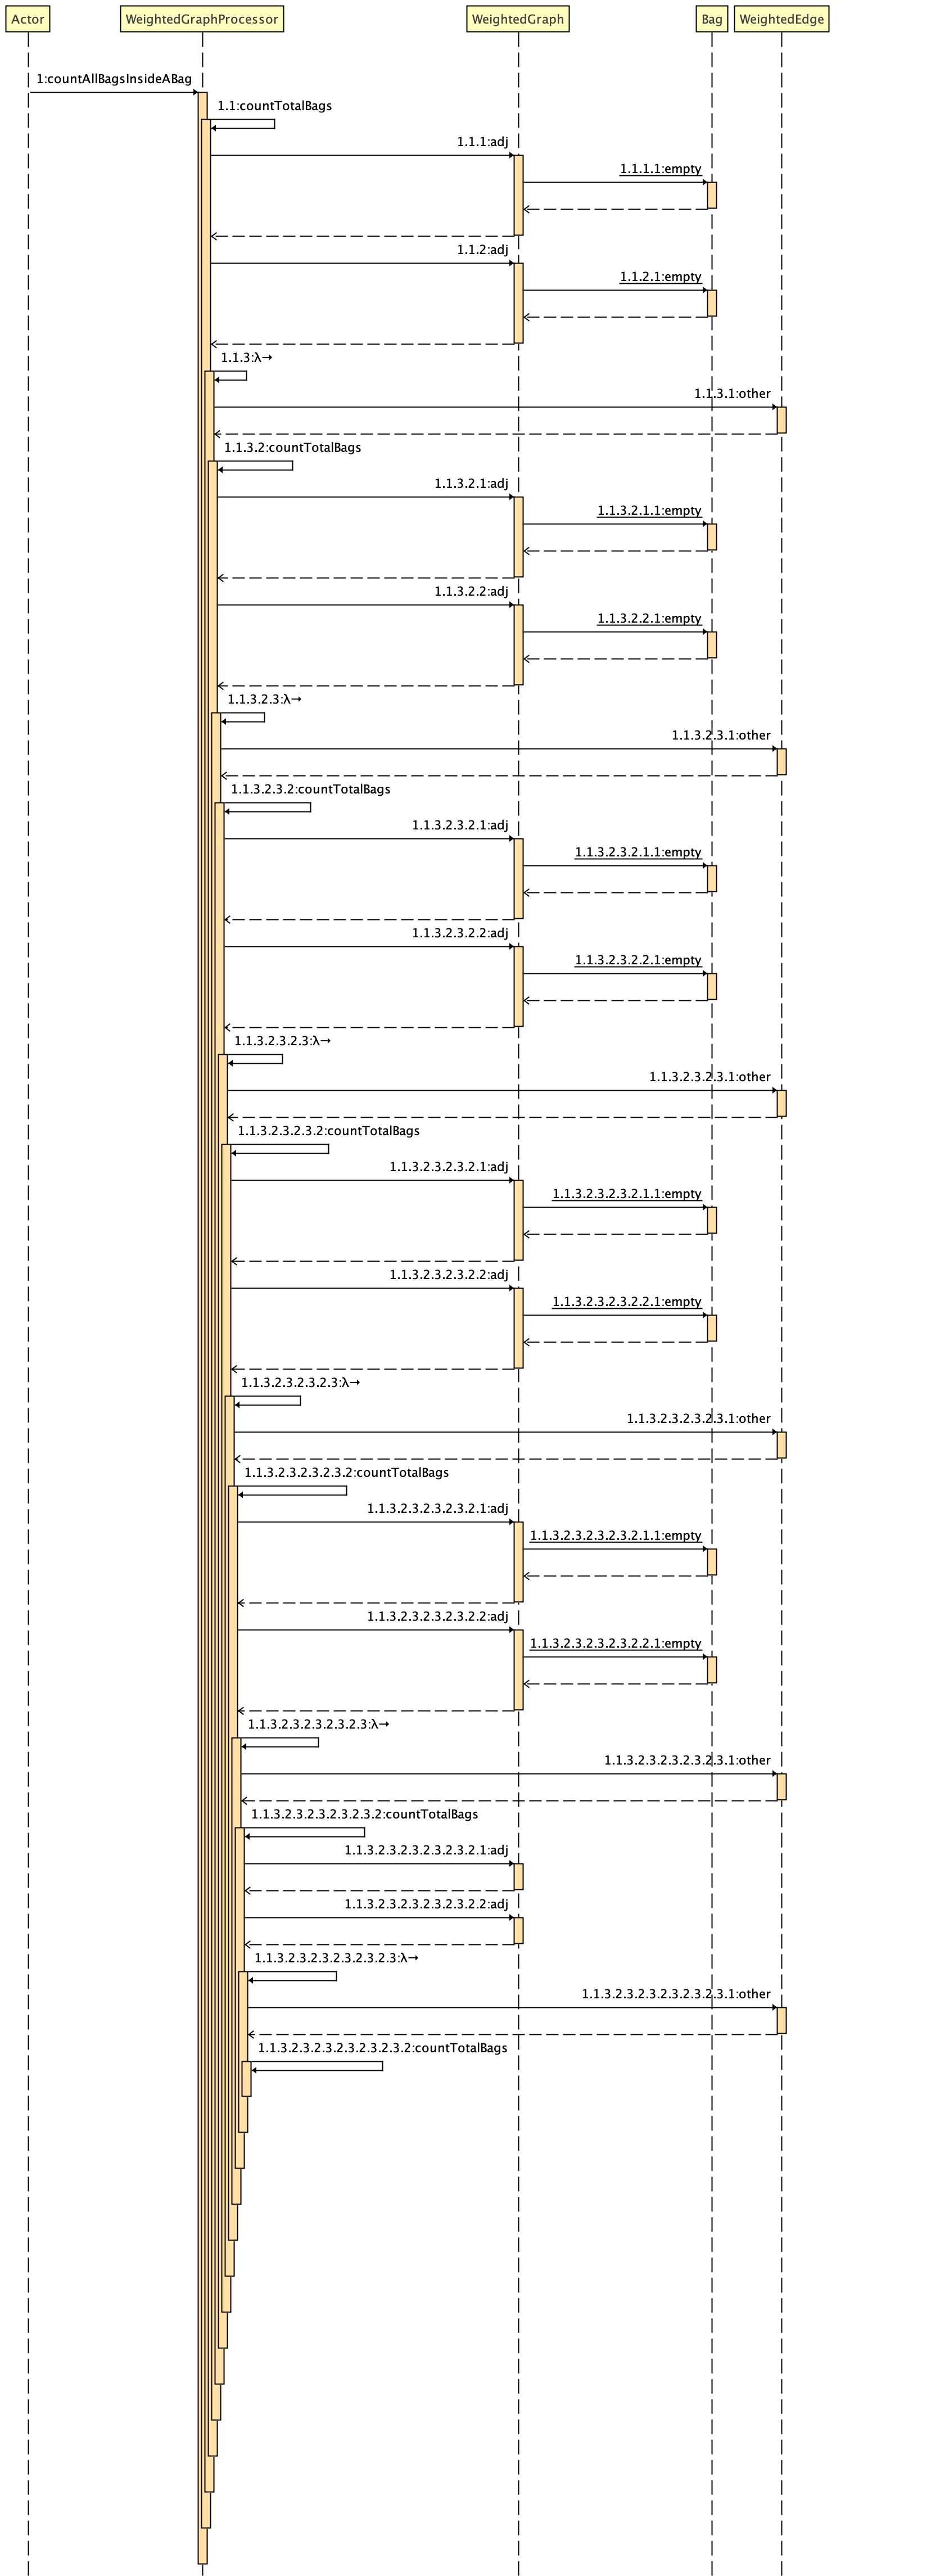 Sequence  Diagram for counting total bags inside Shiny Gold Bag.